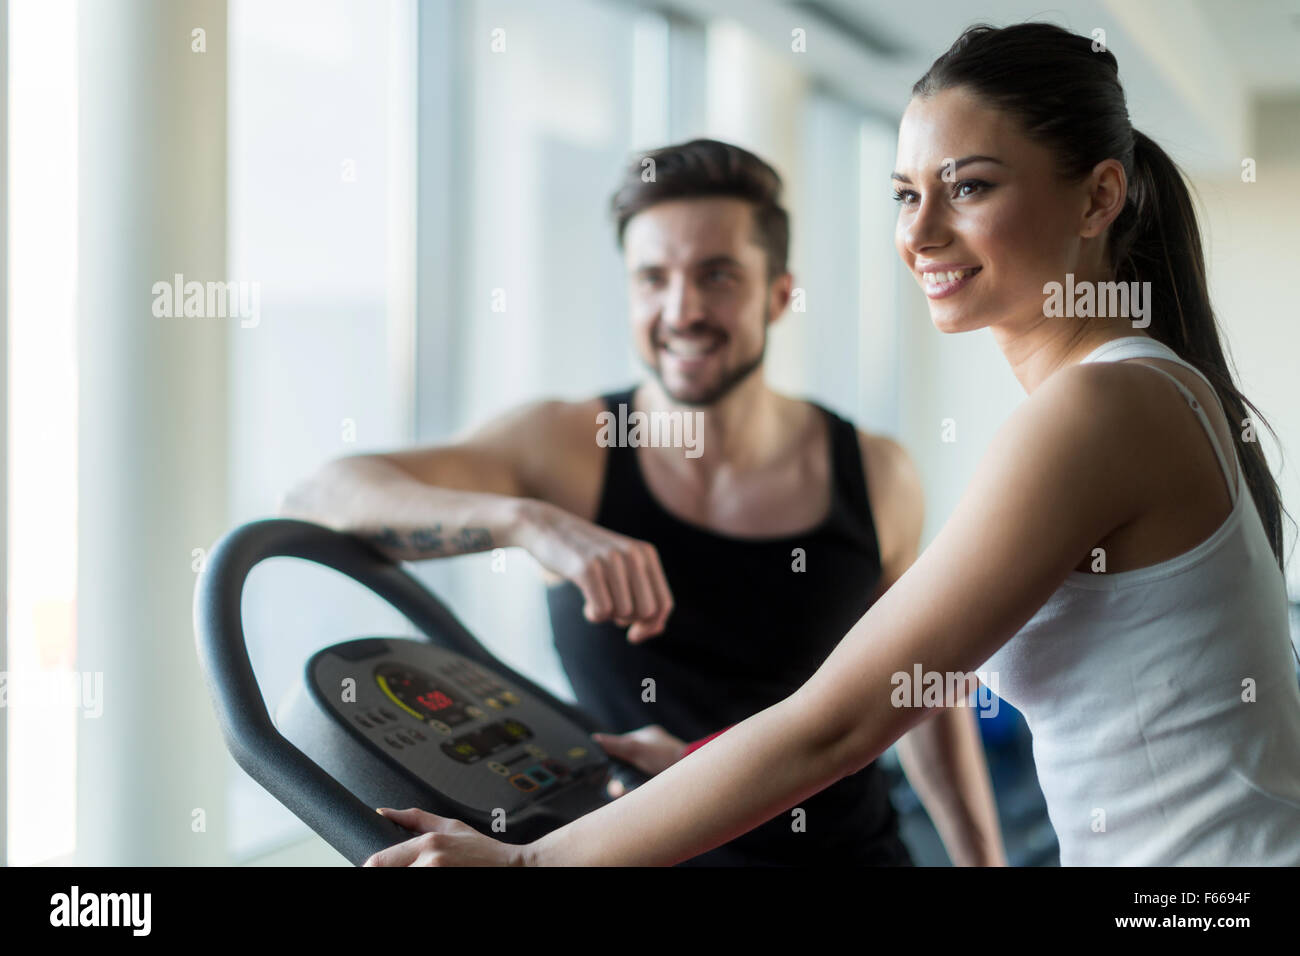 Beautiful, young people talking in a gym while working out and burning calories - Stock Image